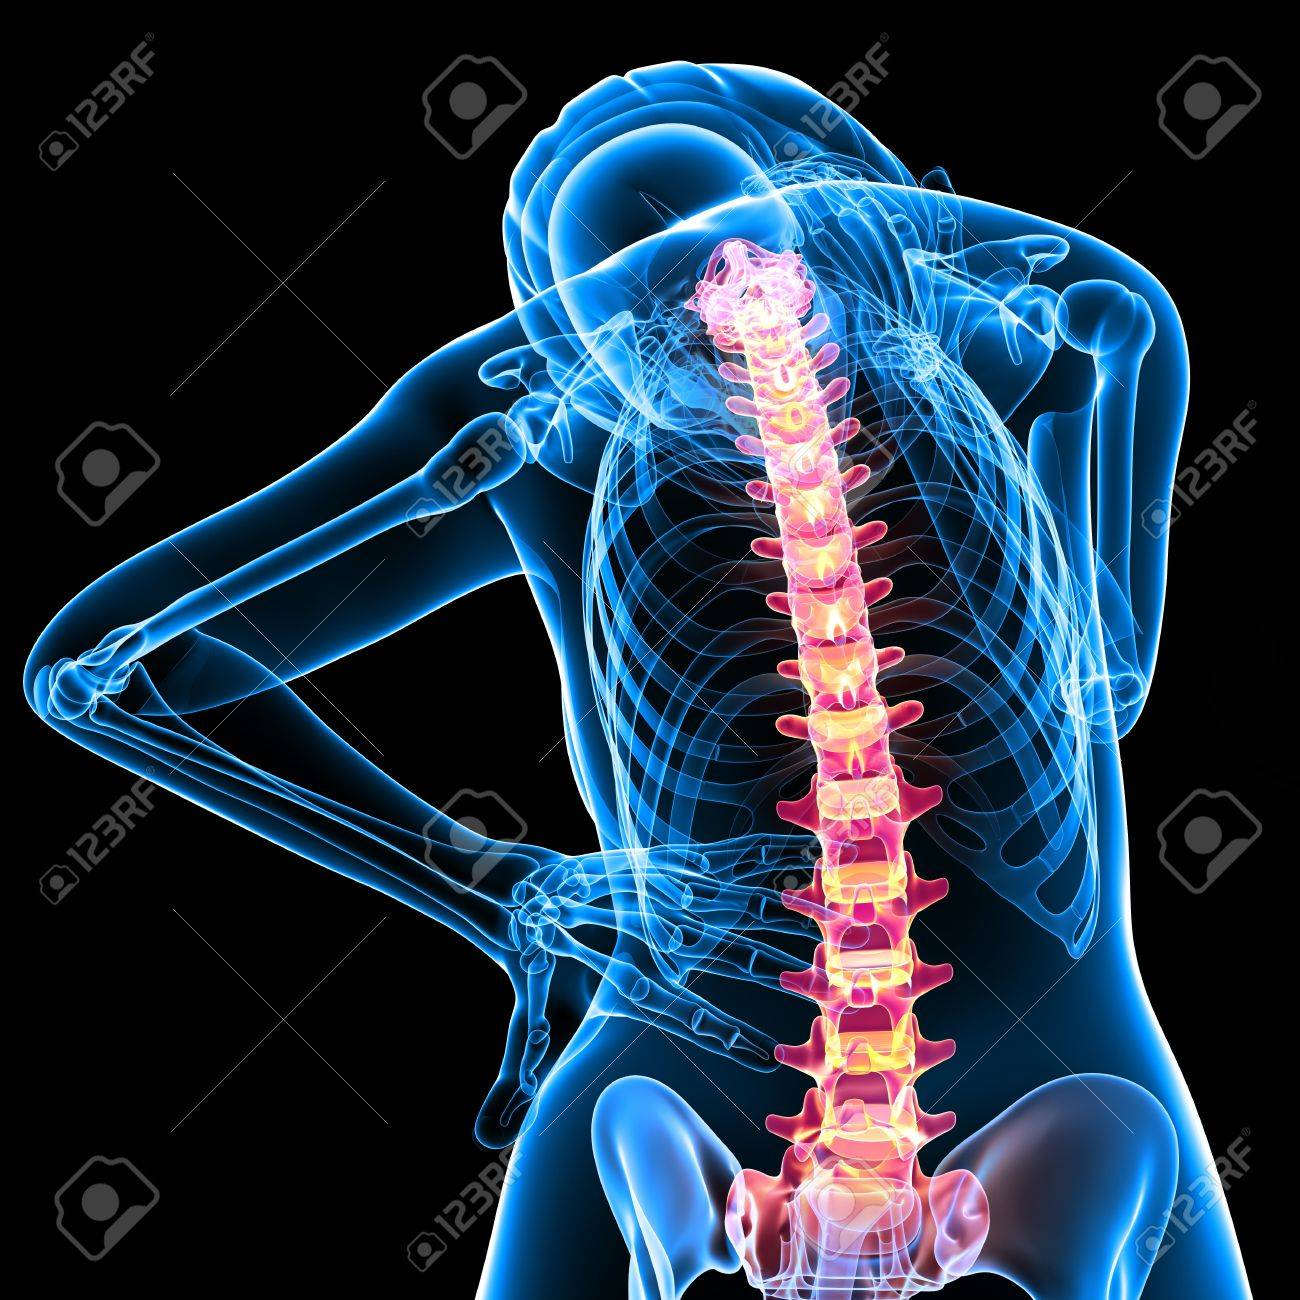 X-ray Anatomy Of Female Back Pain Stock Photo, Picture And Royalty ...